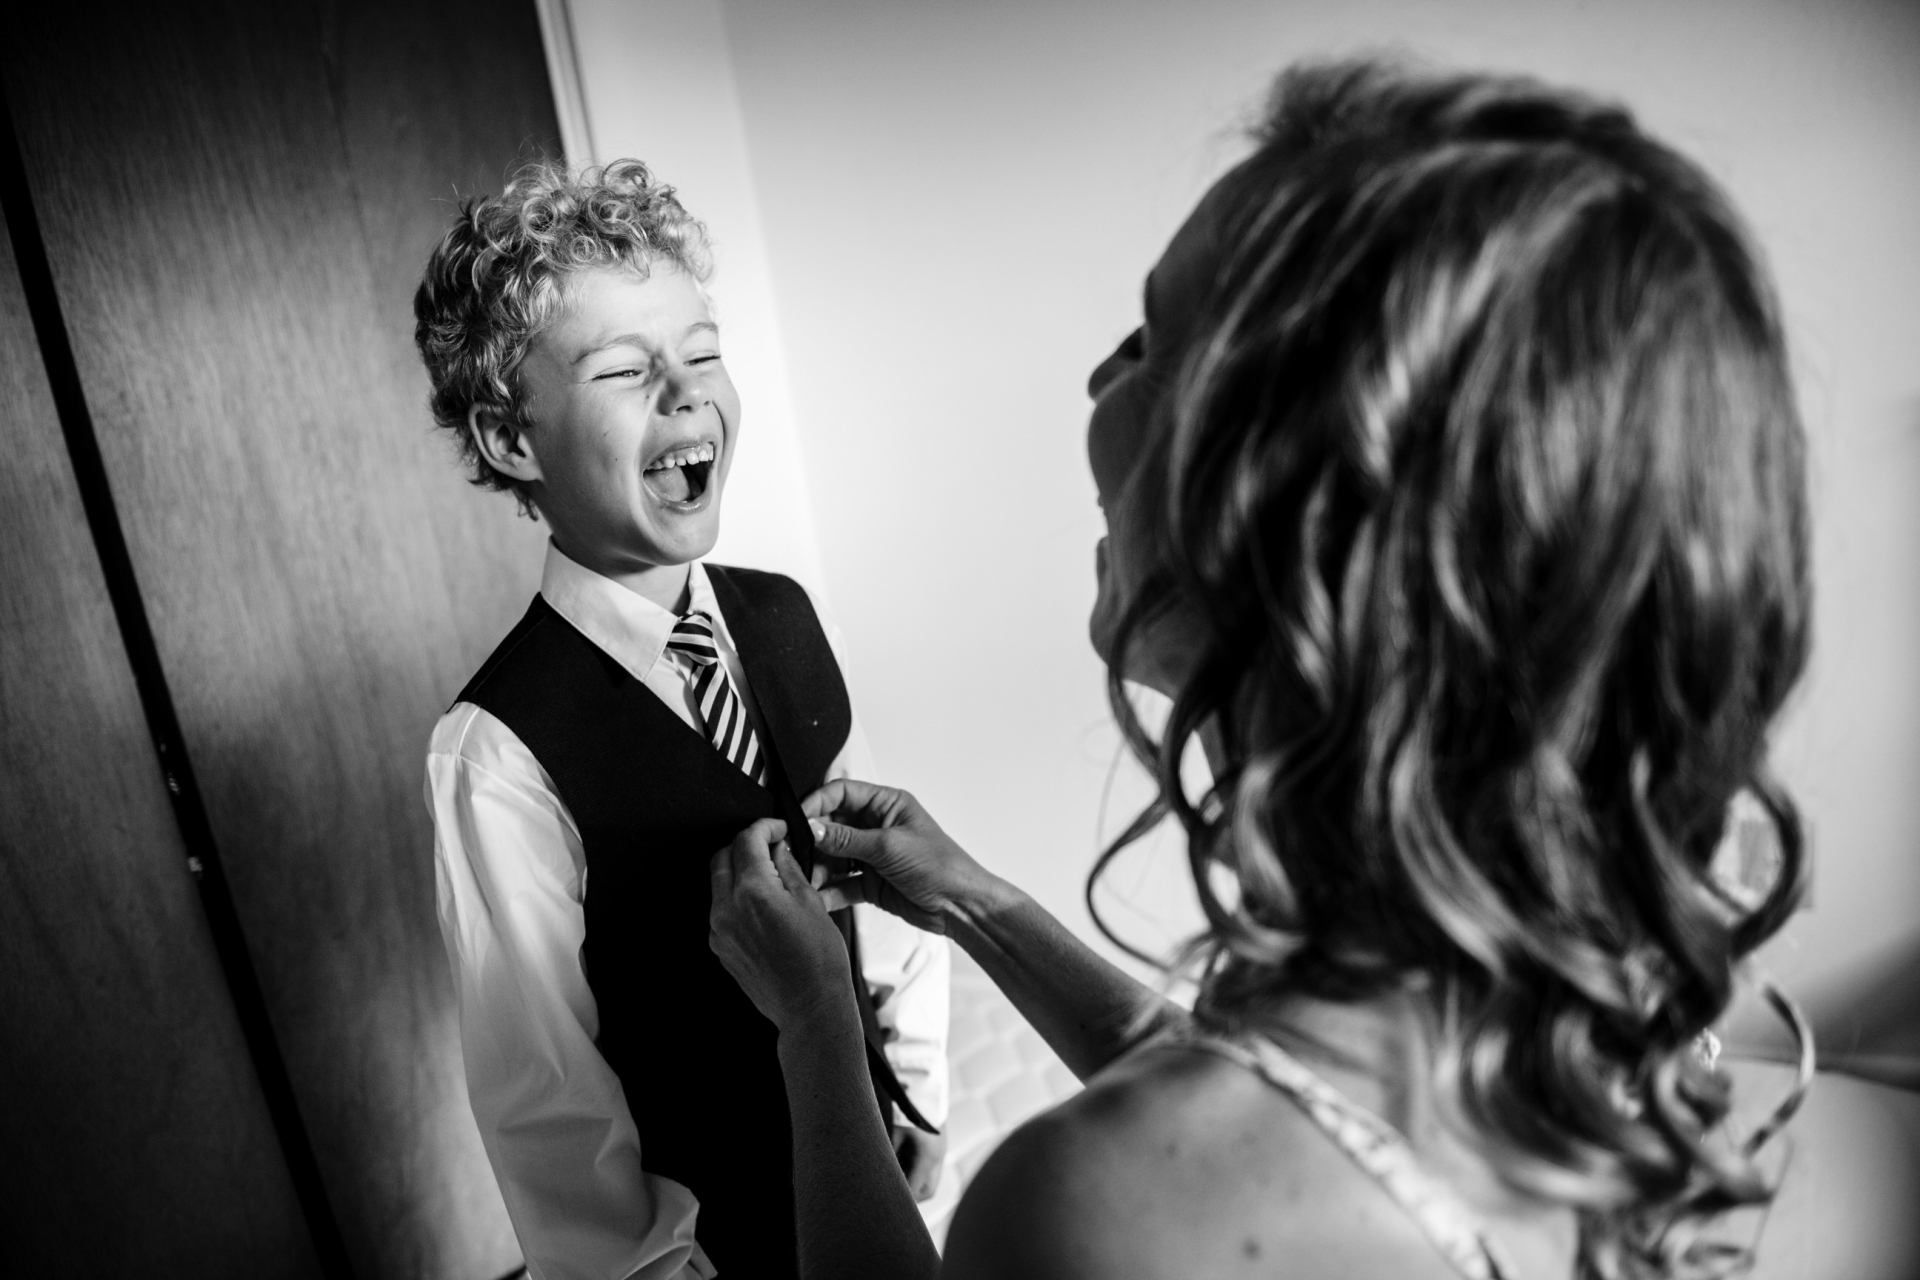 CO Micro Elopement Images | The bride helps her son get dressed for the wedding